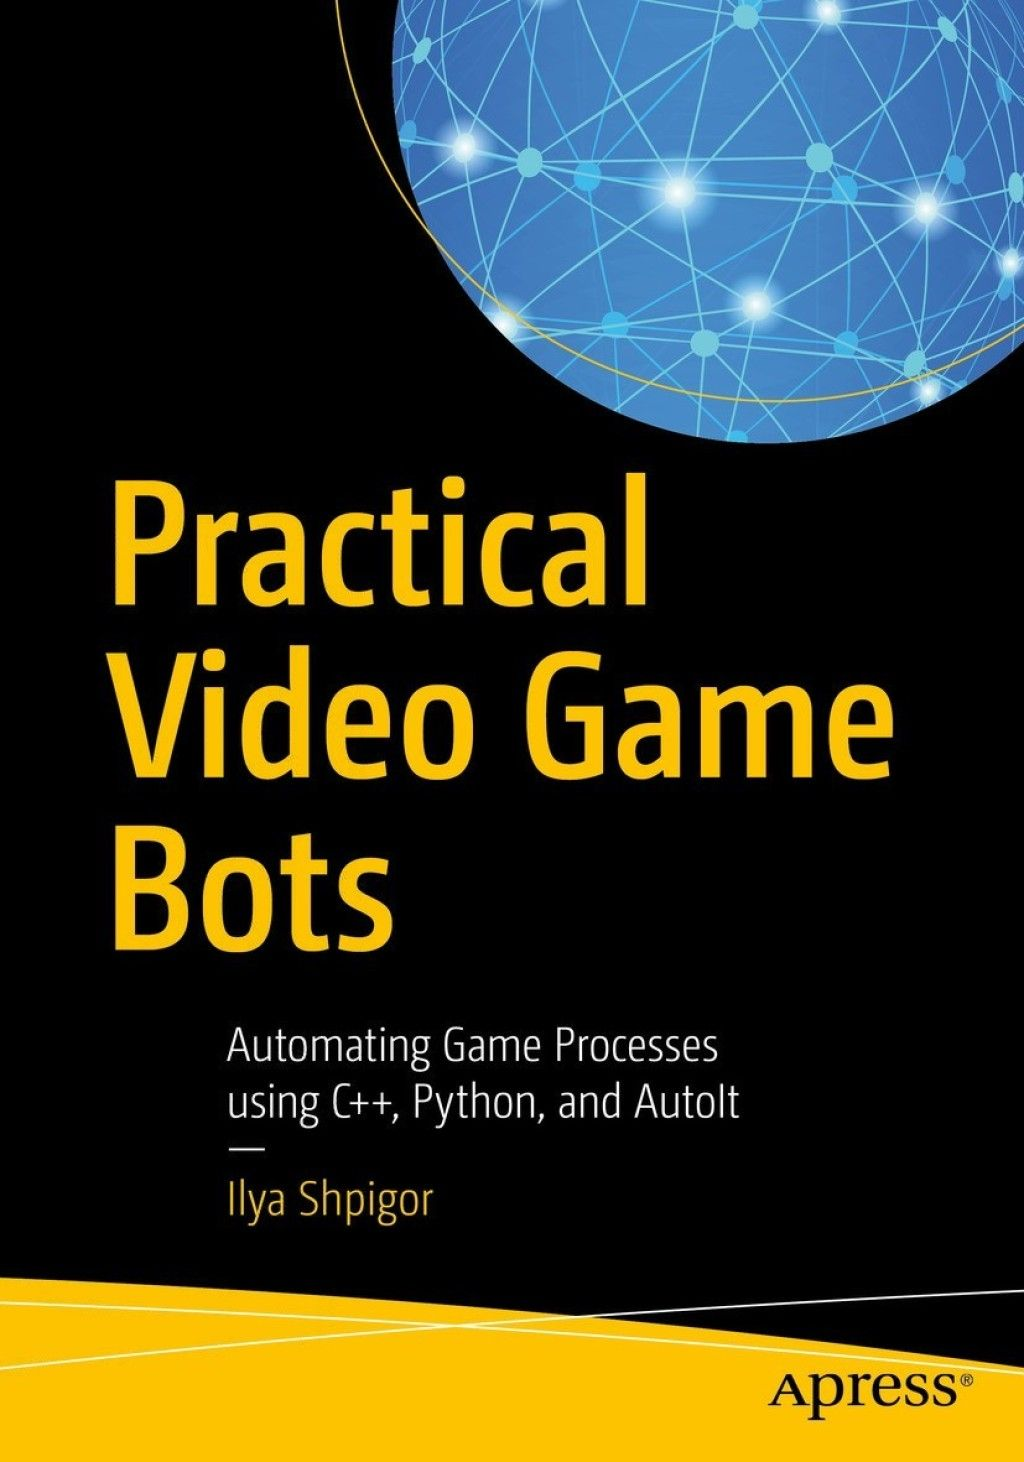 Practical Video Game Bots (eBook)   Products   Video games, Games